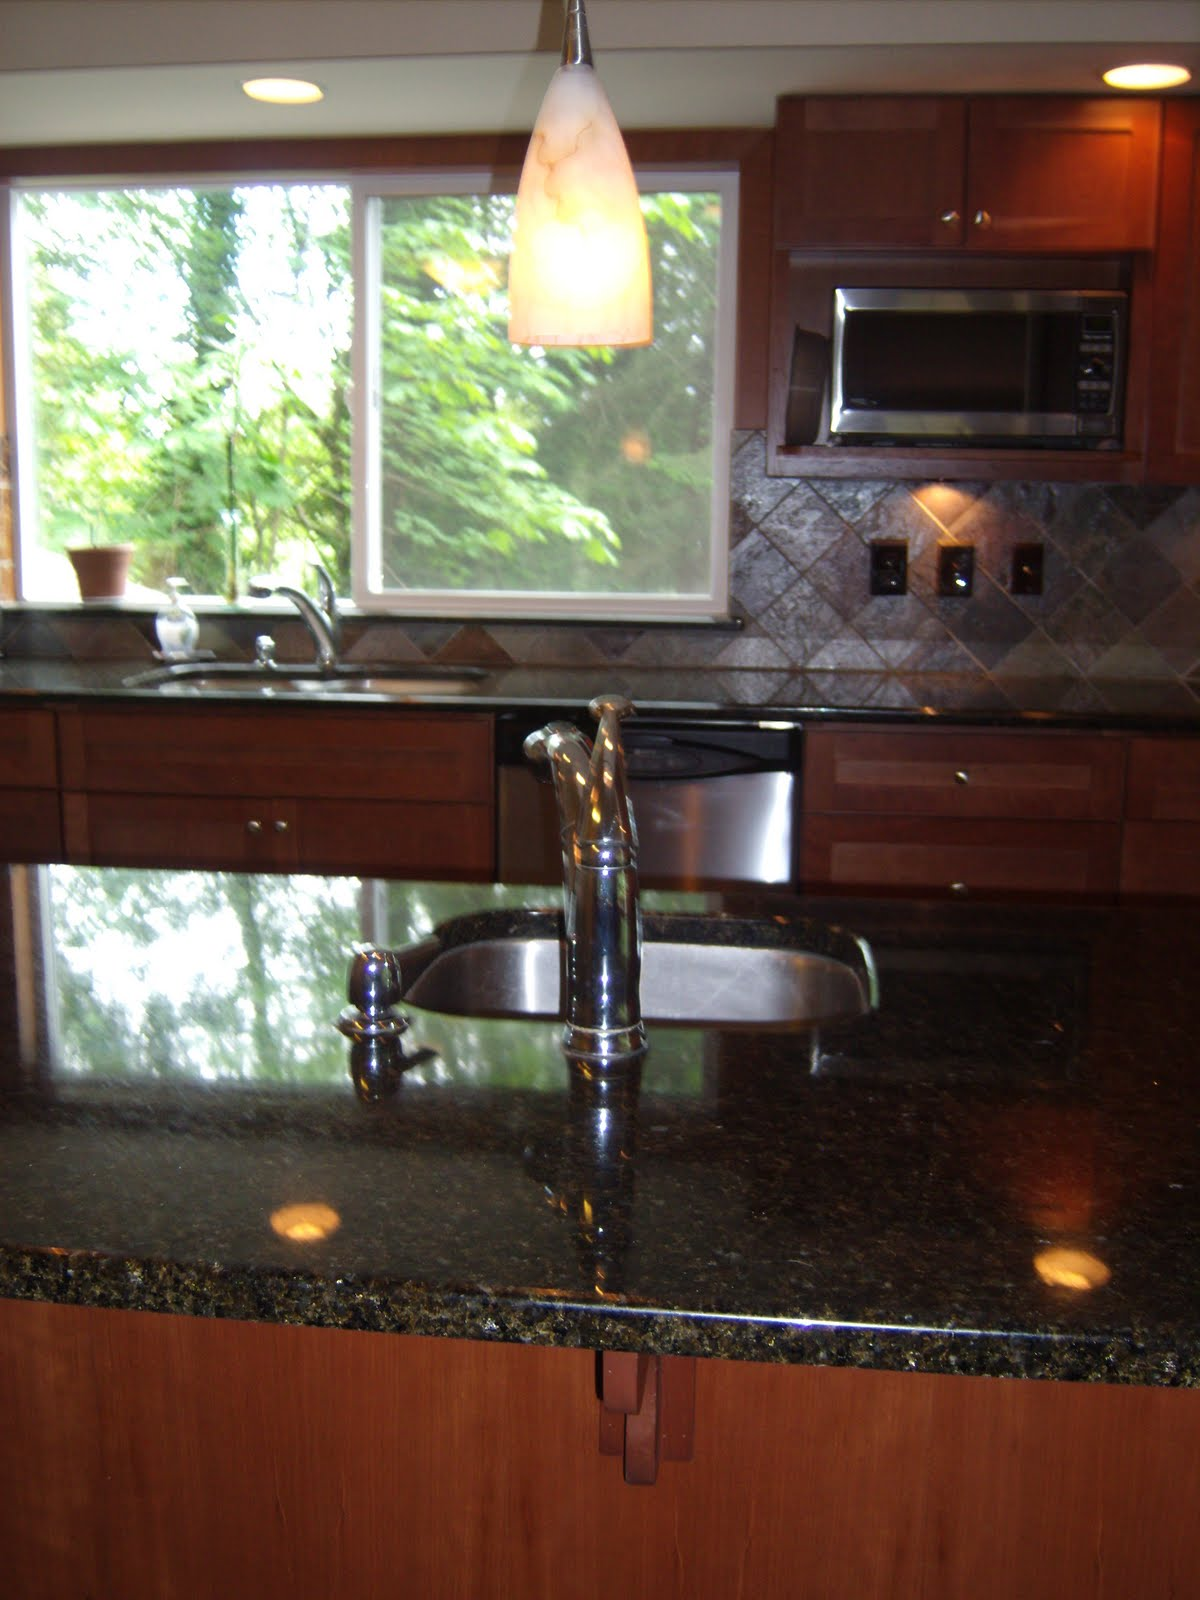 kitchen design considerations. Most kitchens have one sink  but many times there are two people cooking which makes for a crowded kitchen If you incorporating peninsula or island The Perpetual Remodeler Kitchen Design Considerations